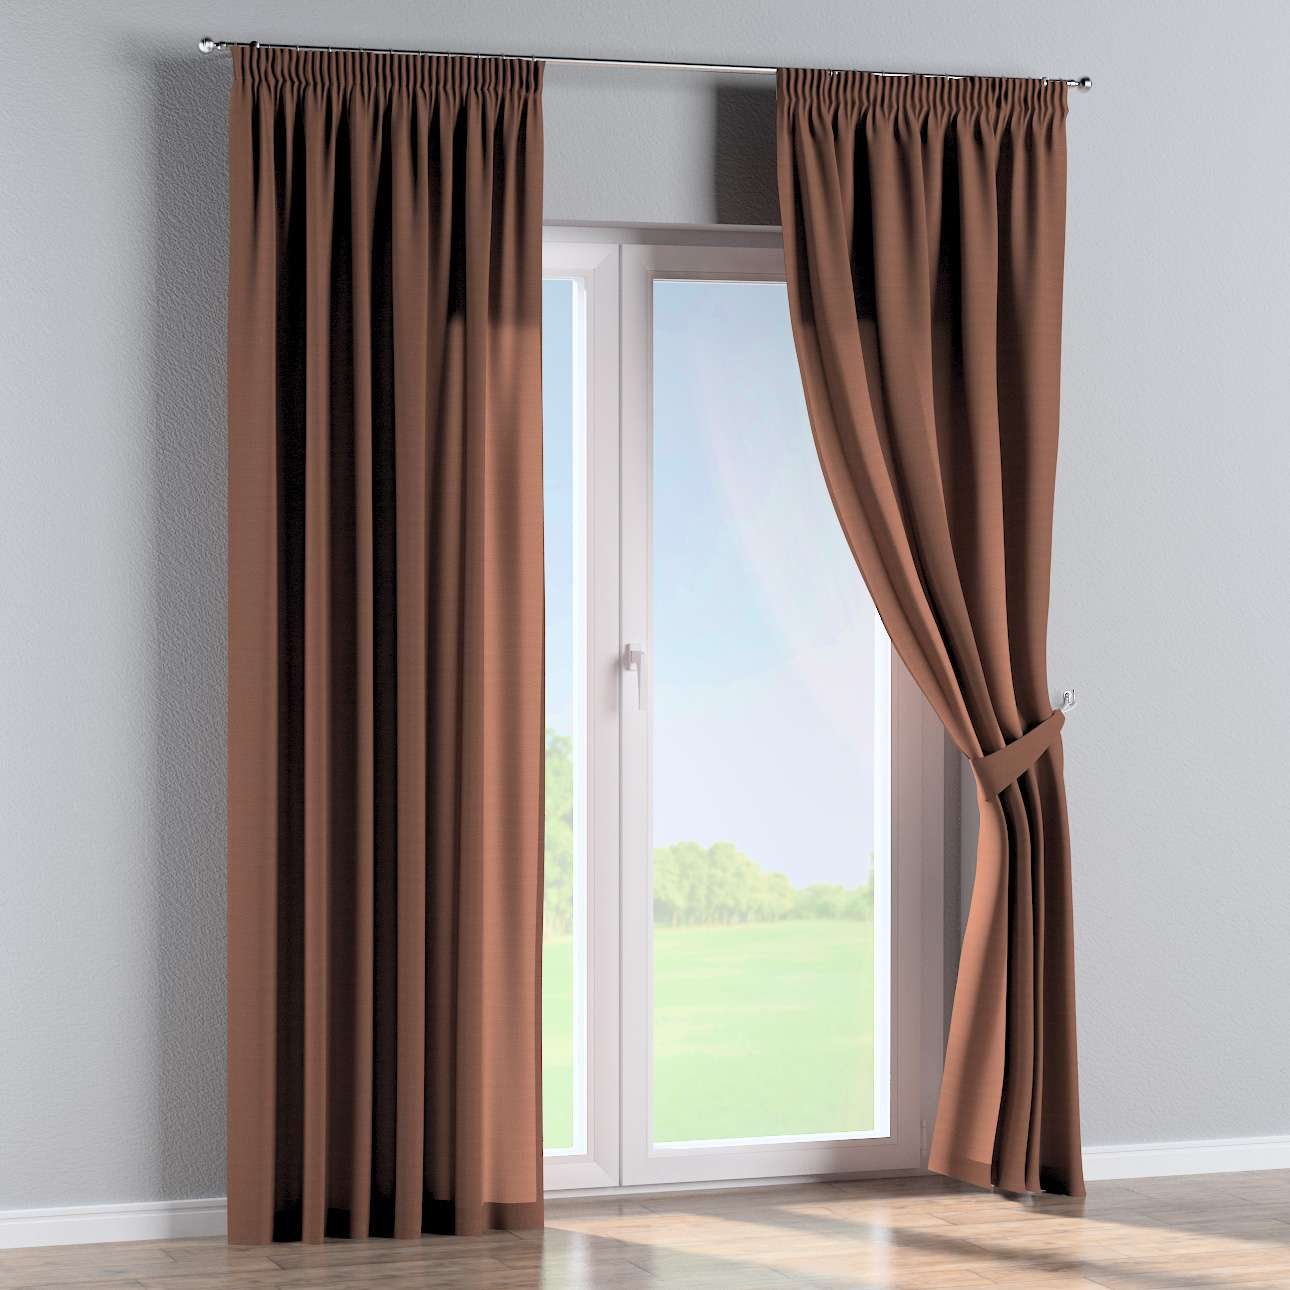 Pencil pleat curtains 130 x 260 cm (51 x 102 inch) in collection Loneta , fabric: 133-09